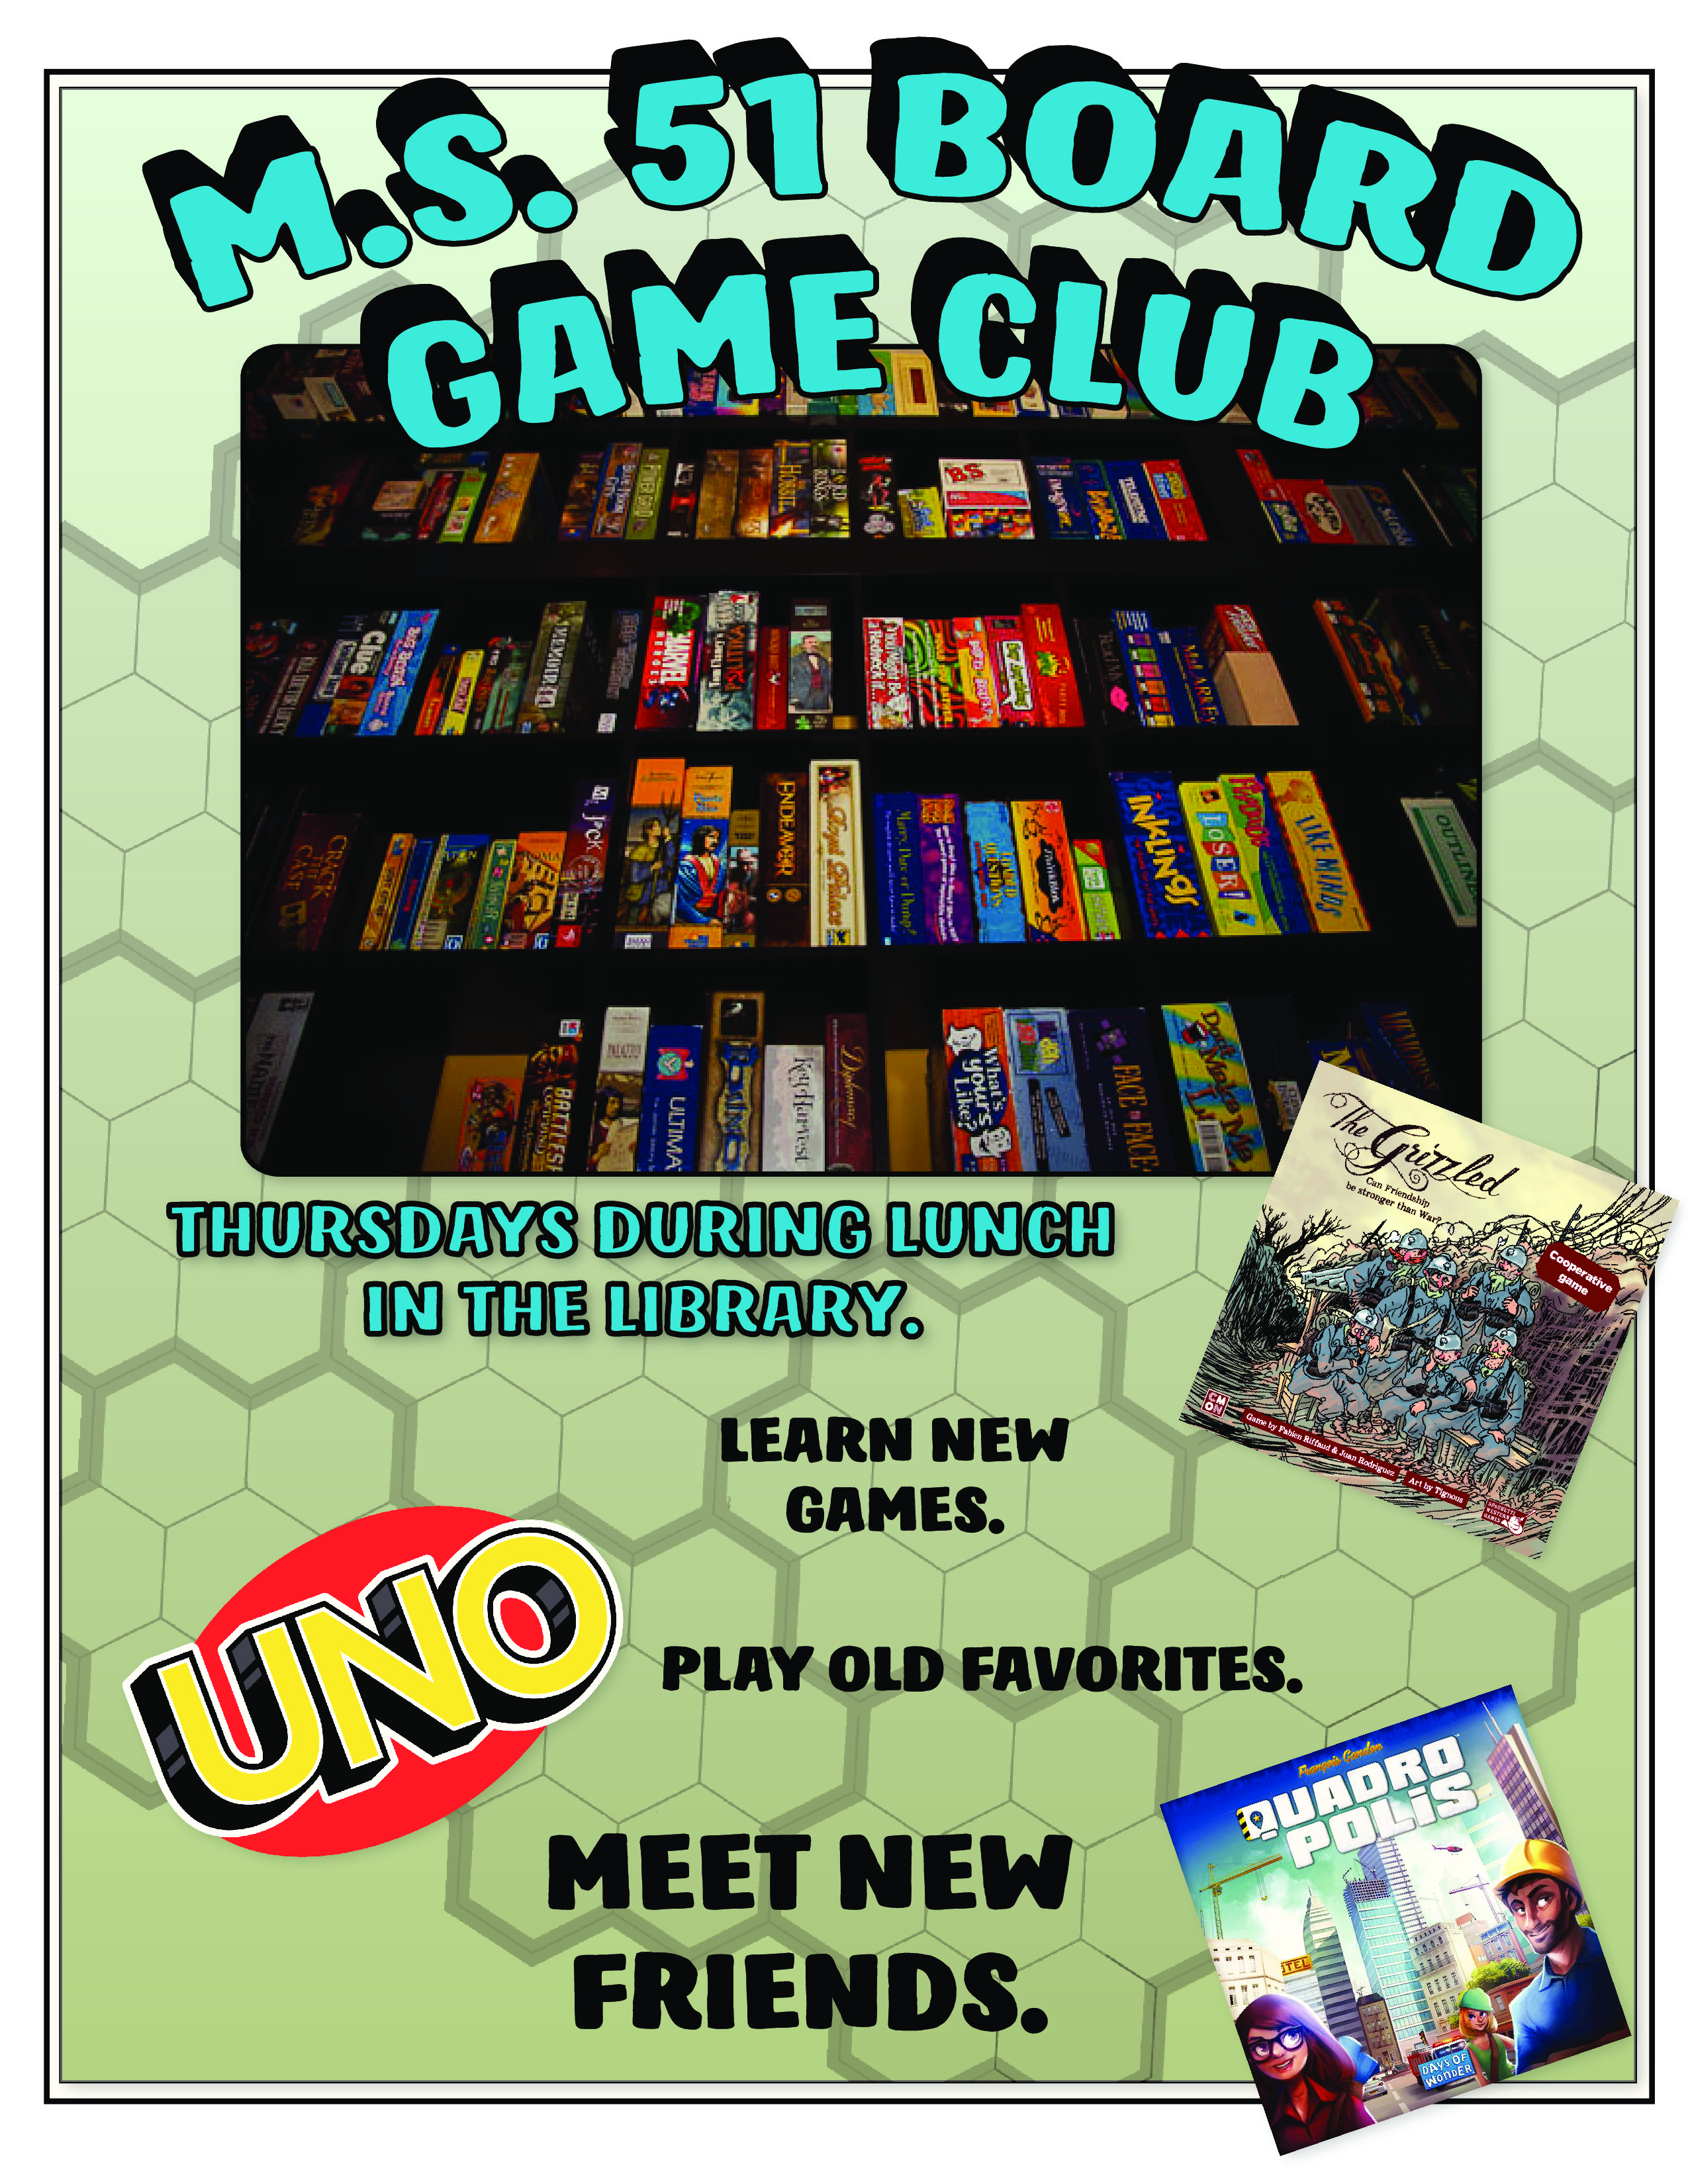 Board Games Club in the Library on Thursdays during lunch